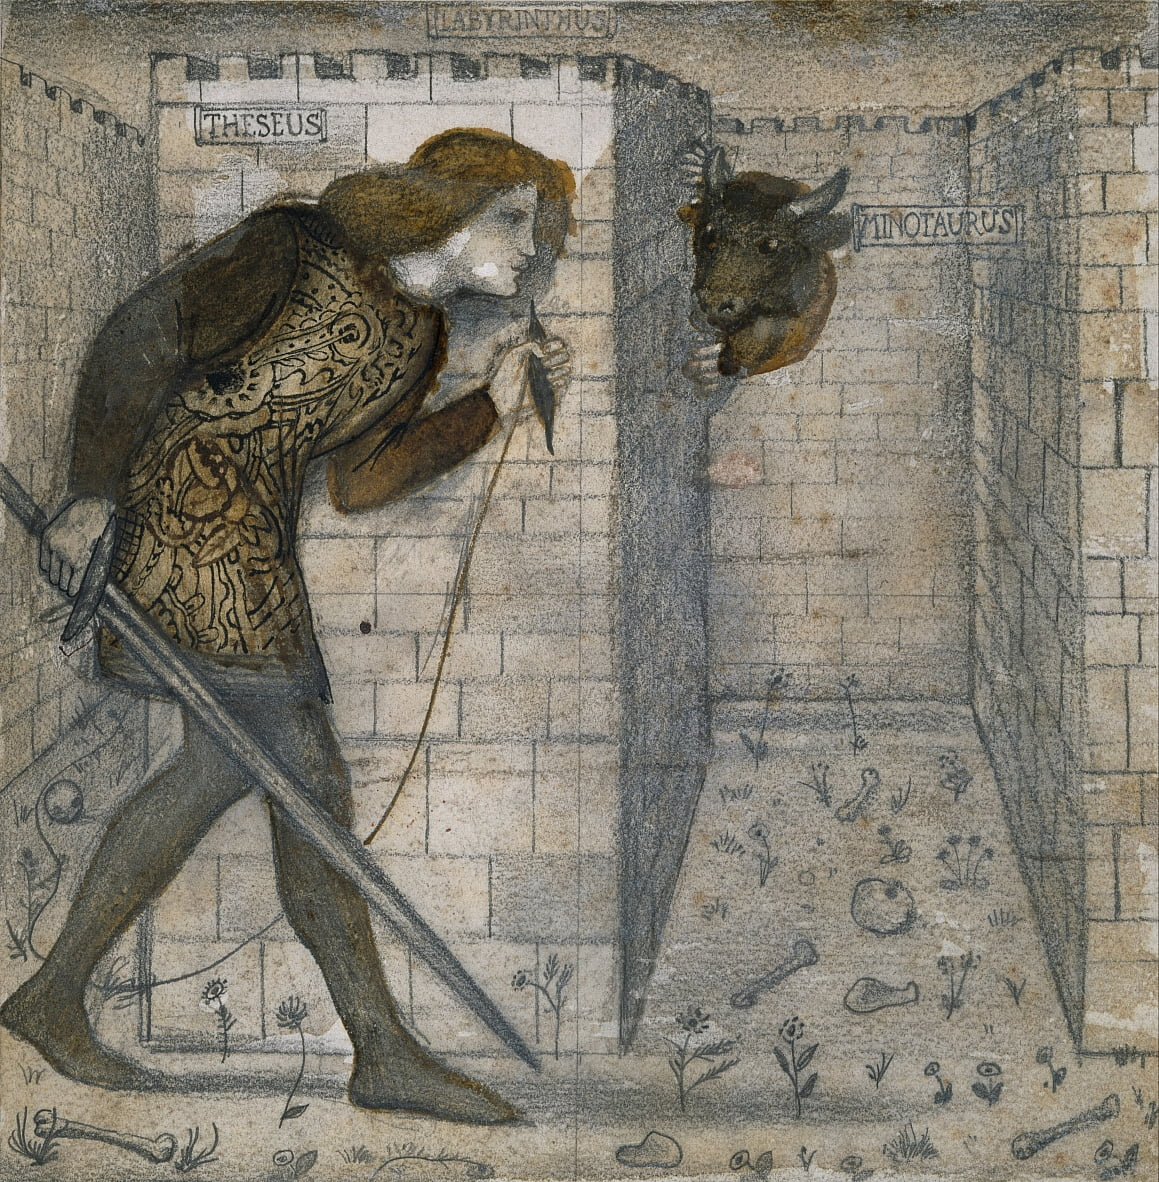 Carrelage - Edward Burne Jones